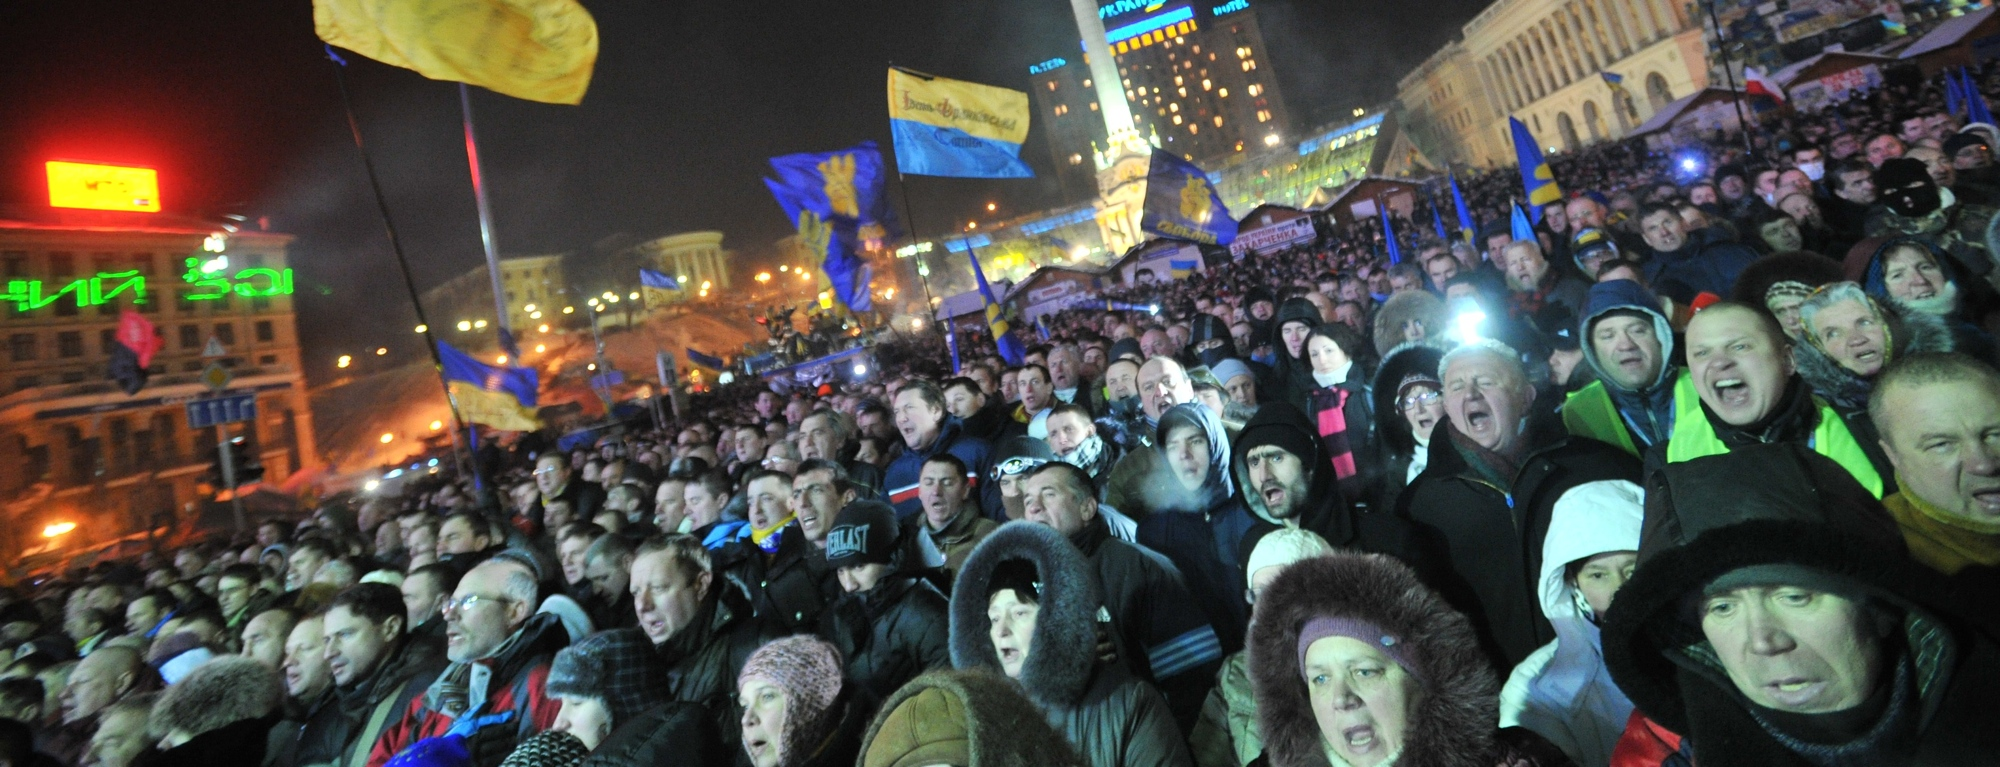 How the Kiev disturbances are affecting Ukraine's tech sector - for good and bad